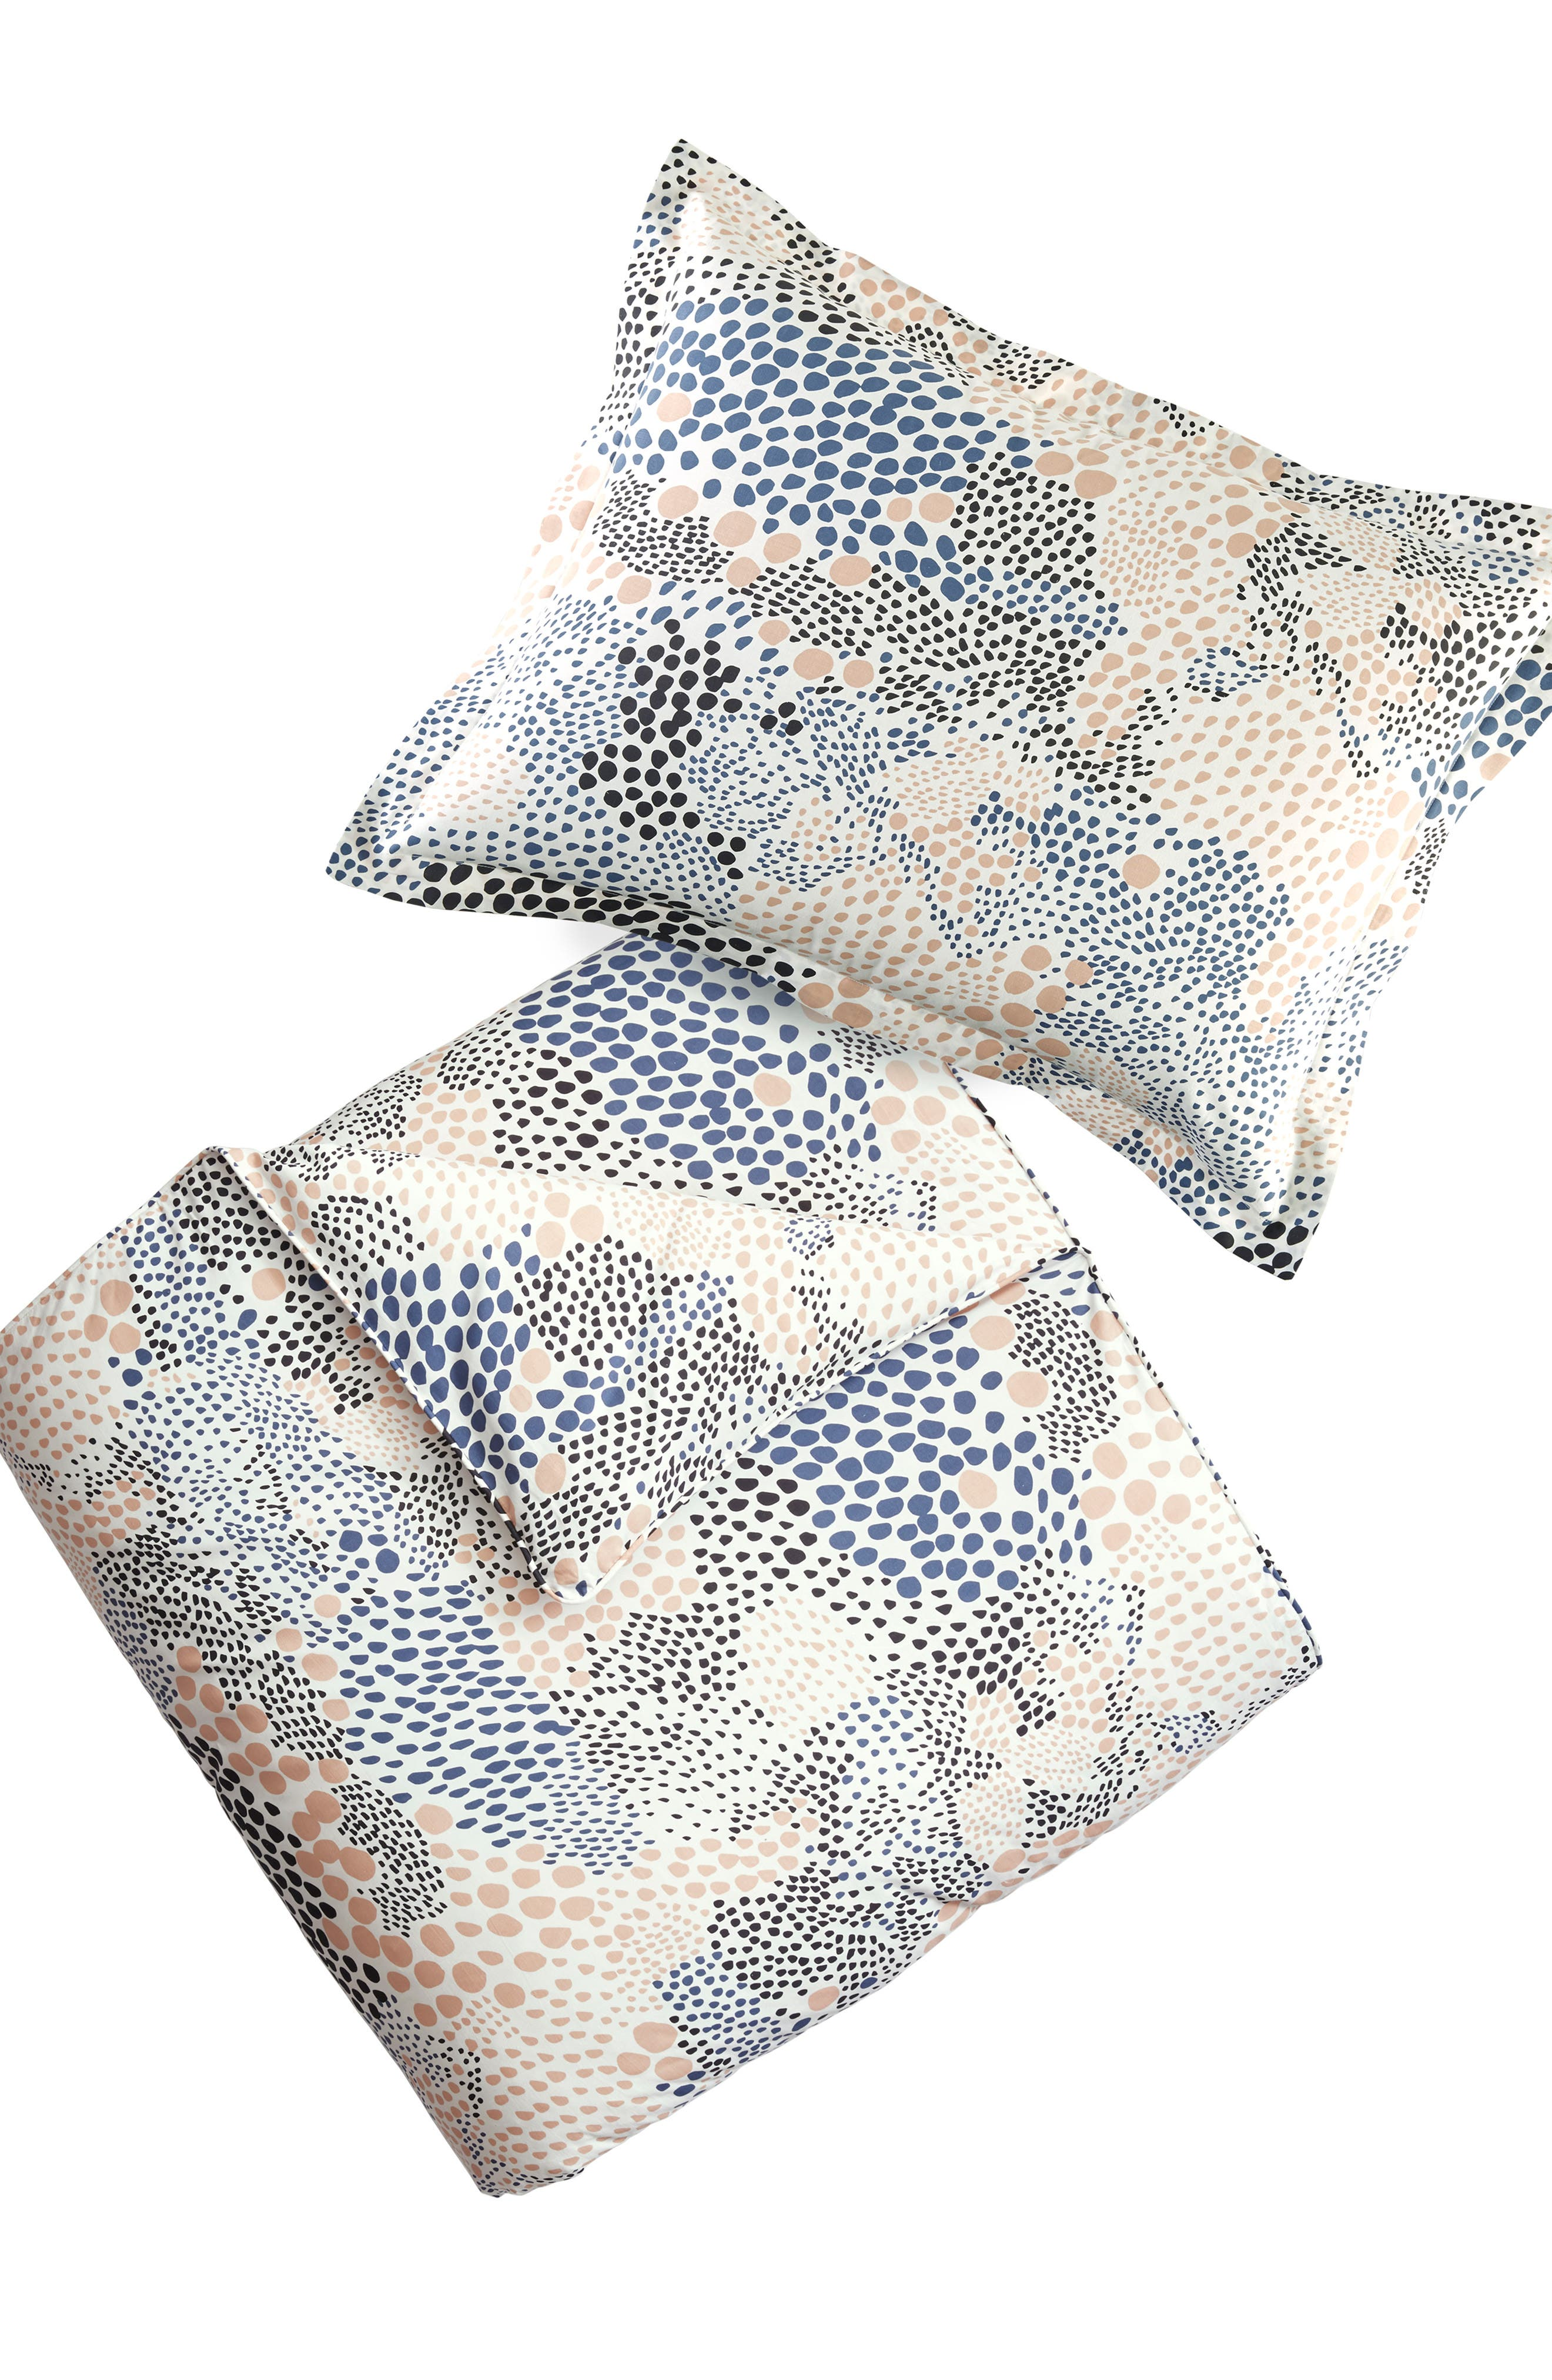 Pebble Noir Duvet Cover & Sham Set,                         Main,                         color, 142